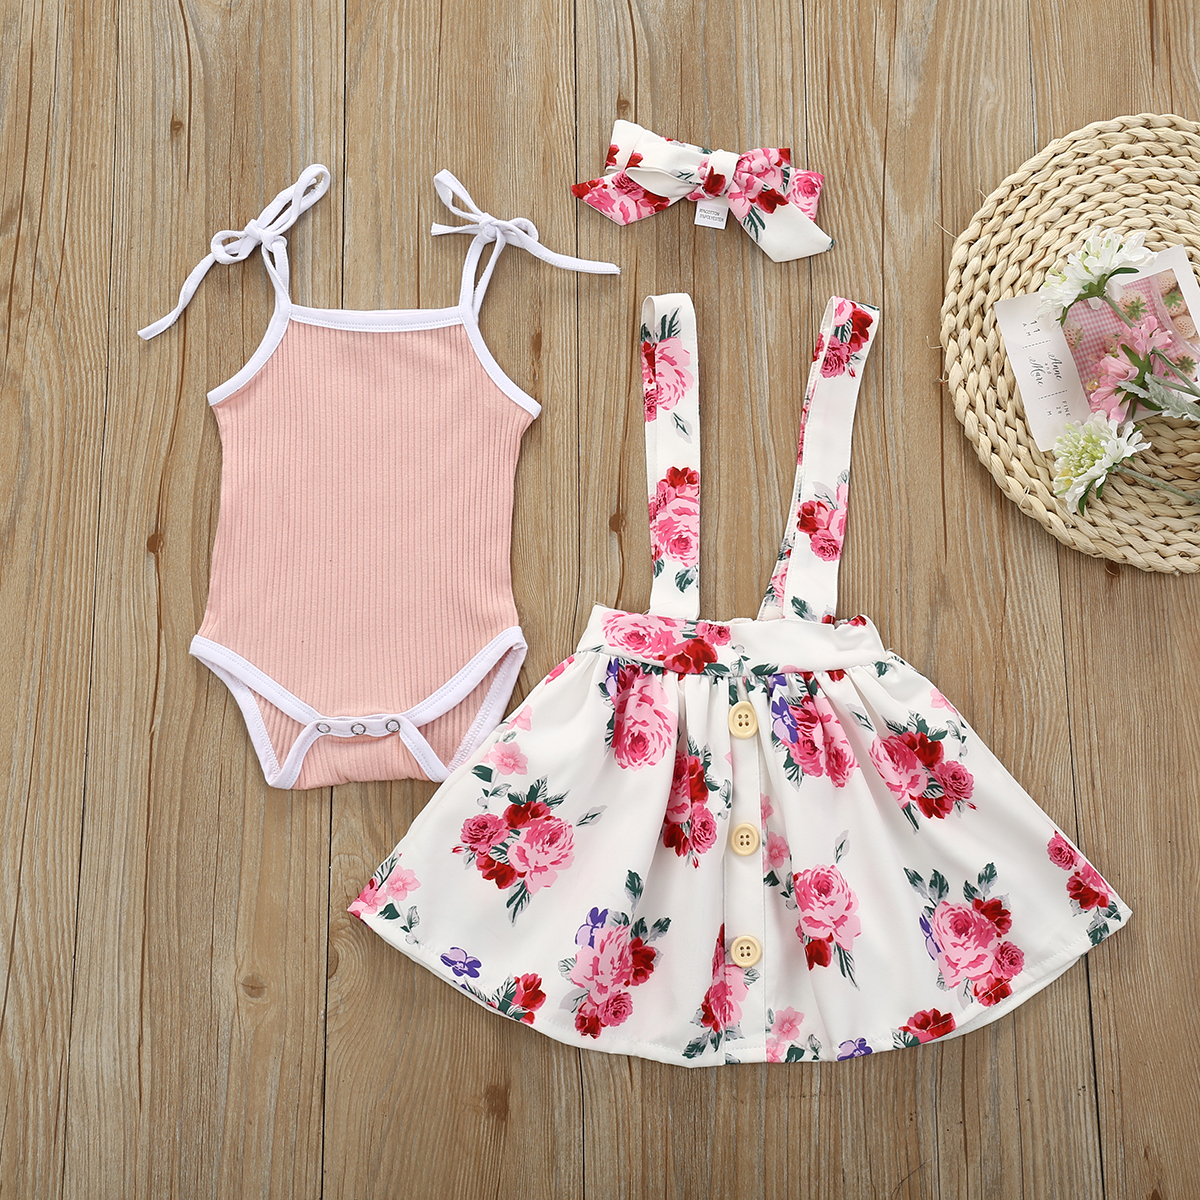 Newborn Infant Kids Baby Girl Clothes Romper Bodysuit Floral Strap Skirt Outfits